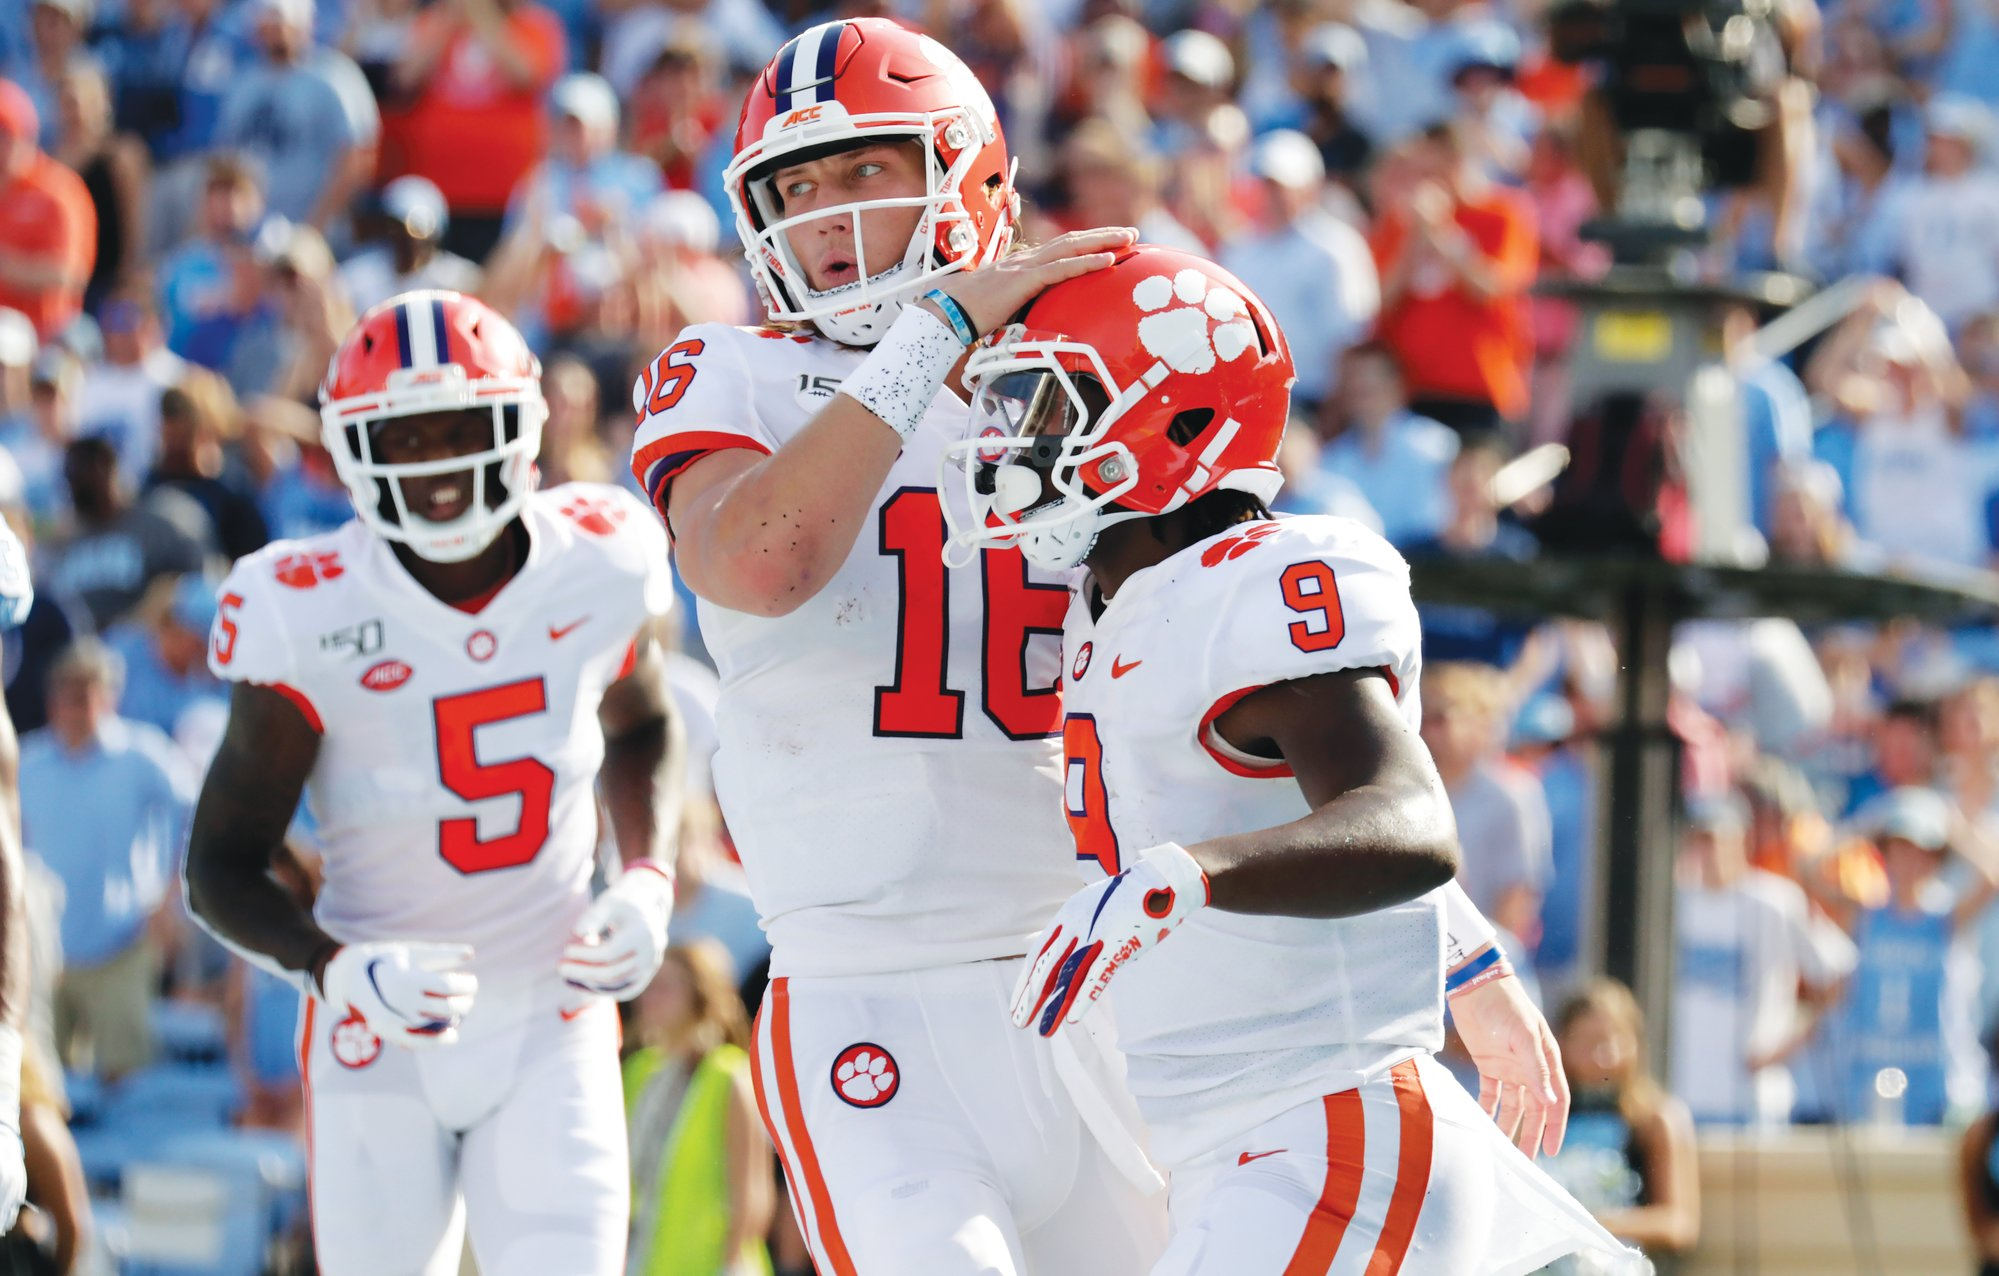 Clemson running back Travis Etienne (9) celebrates his touchdown with quarterback Trevor Lawrence (16) and wide receiver Tee Higgins (5) during the Tigers' 21-20 win over North Carolina in Chapel Hill, N.C., on Saturday.